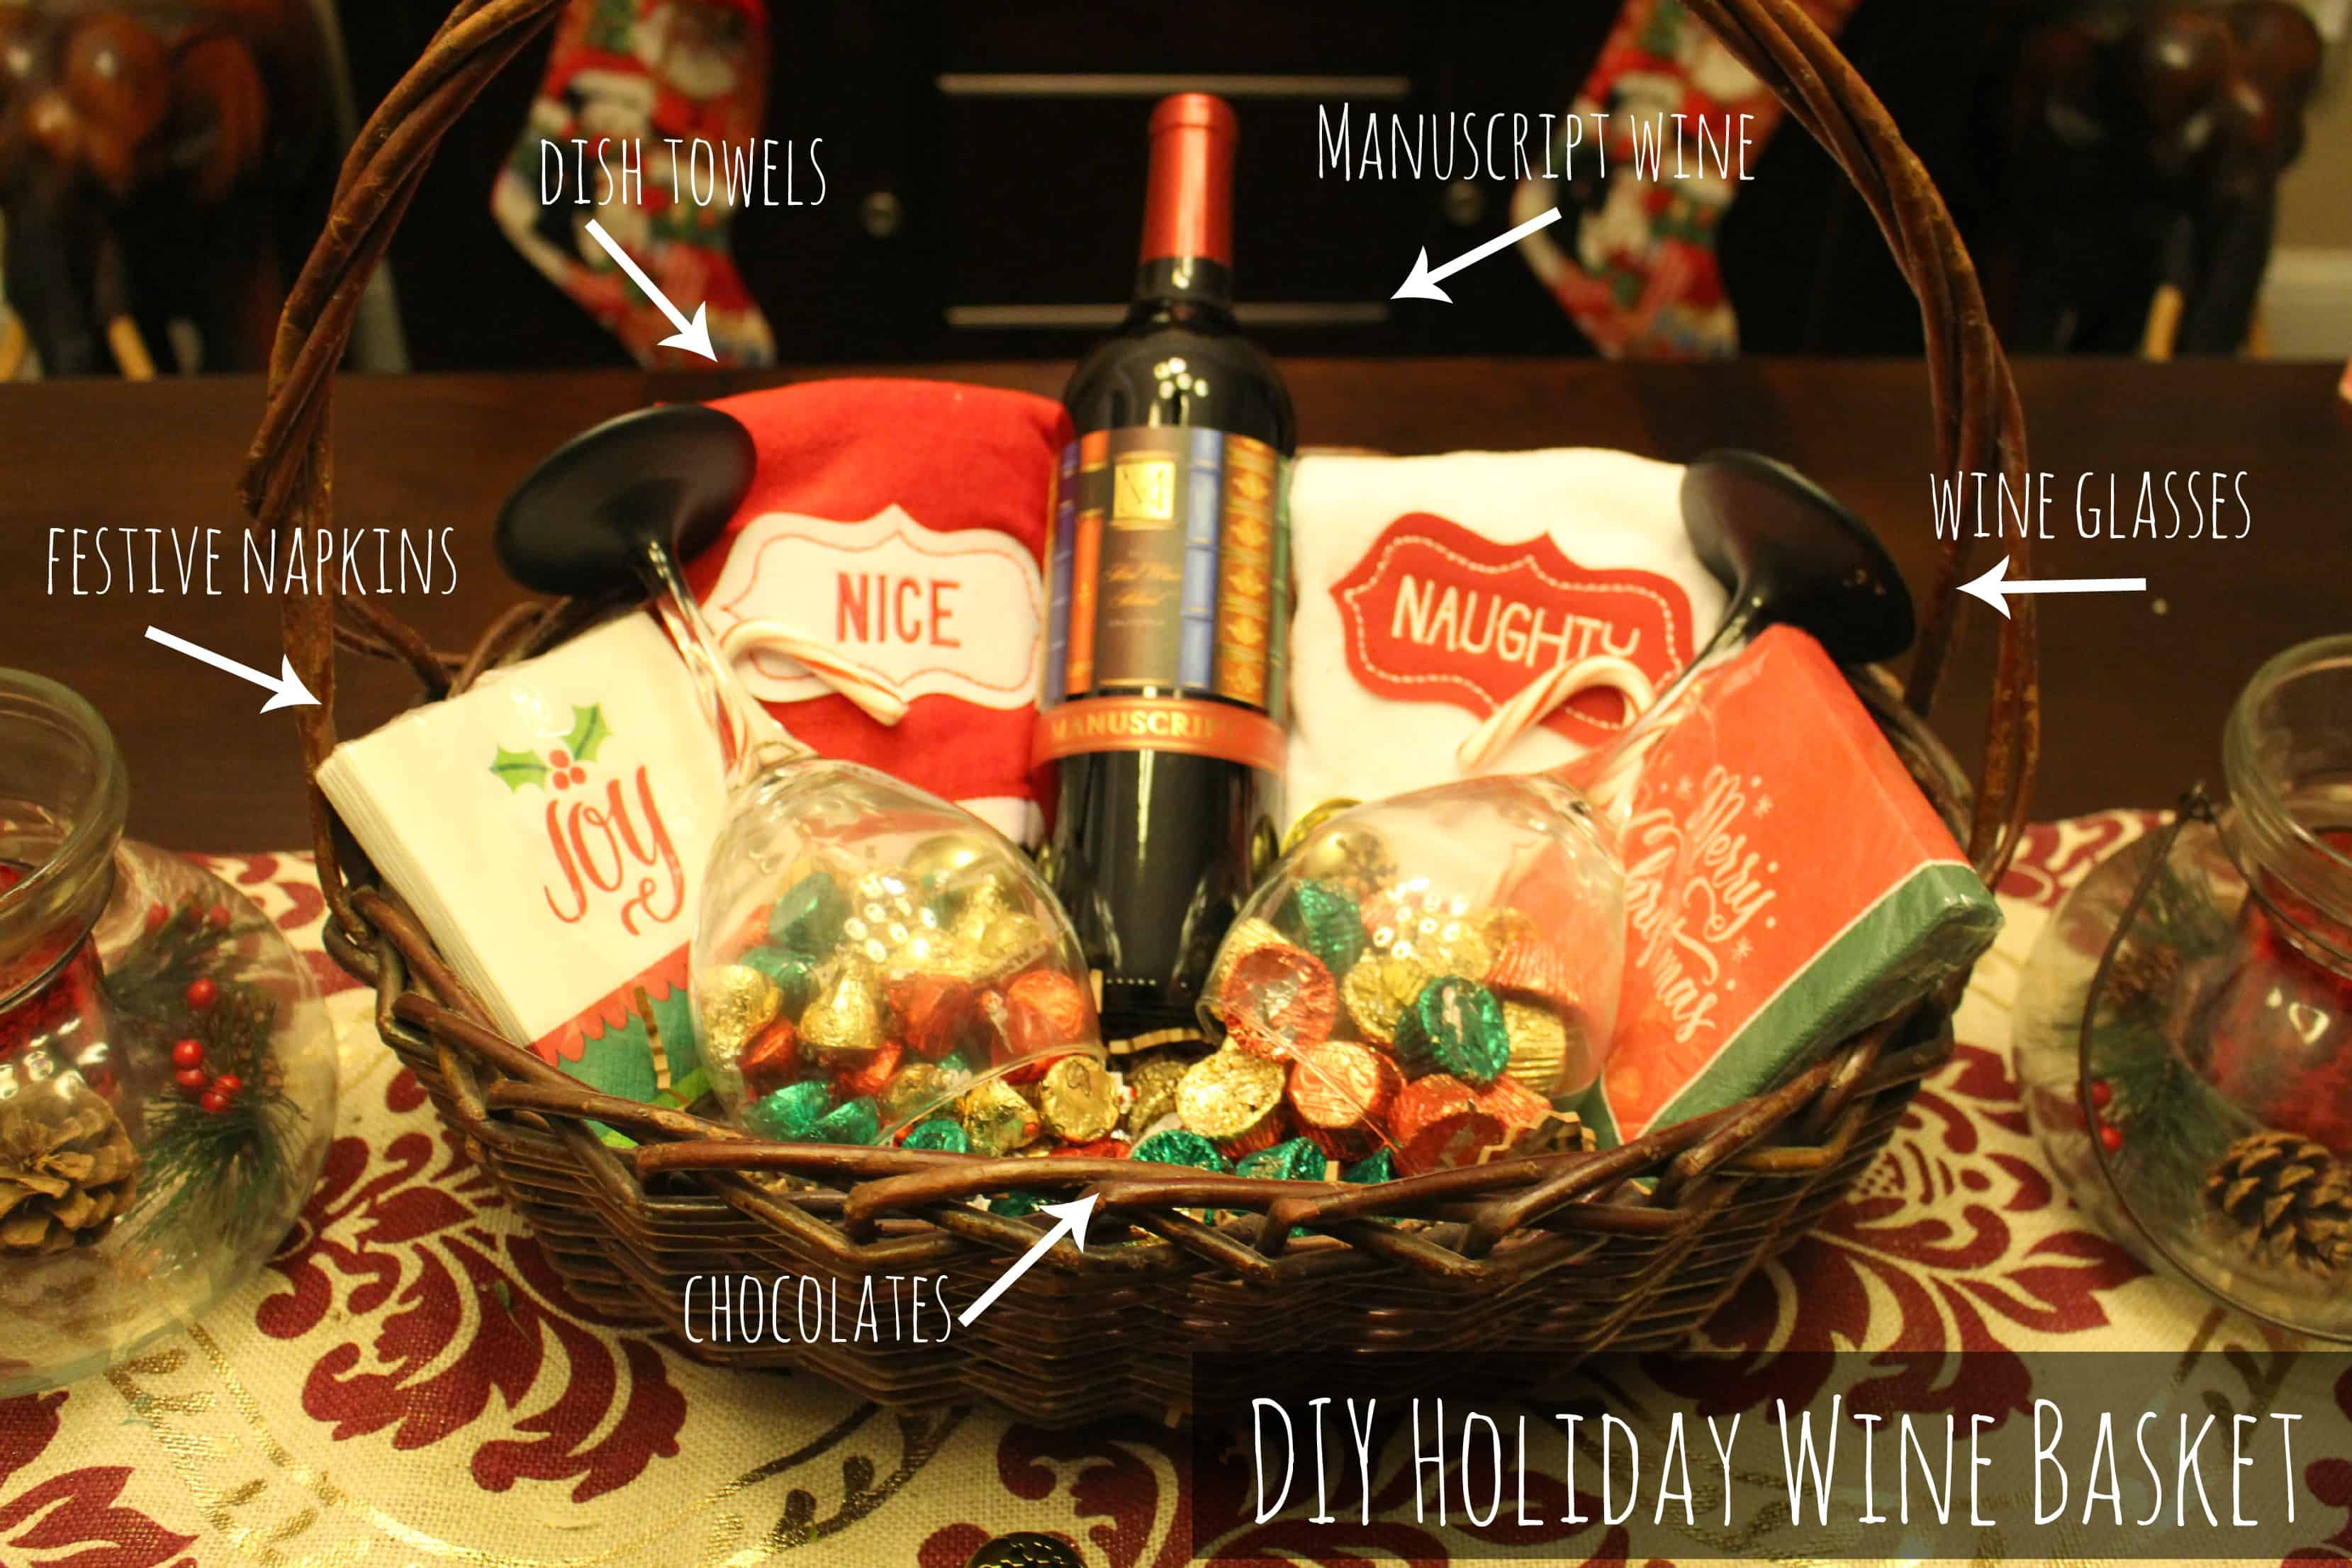 making a holiday wine basket can be as simple or as intricate as you want it